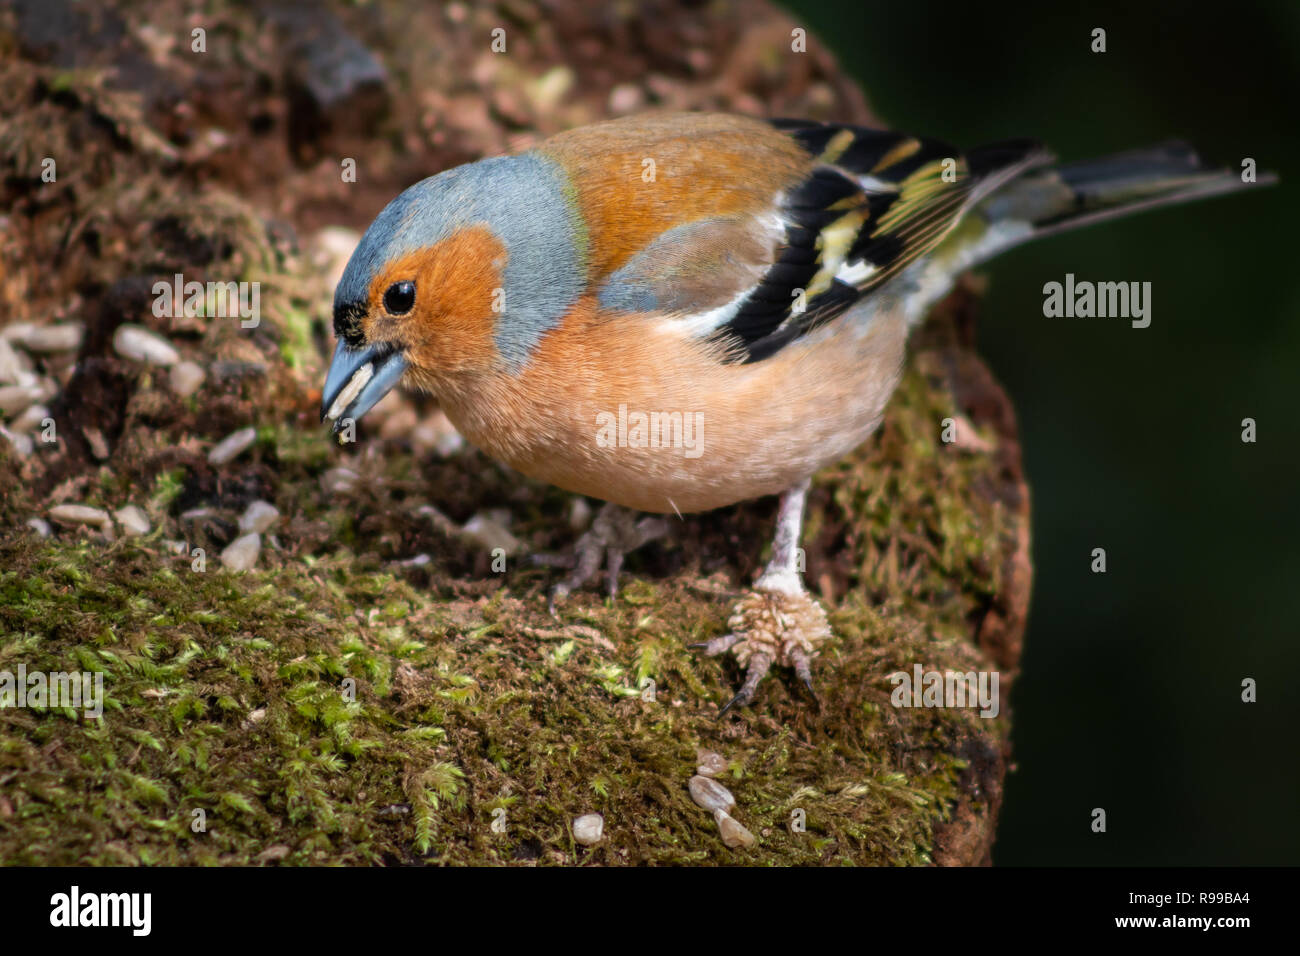 close up of a Chaffinch bird with scaly growth on claws - Stock Image